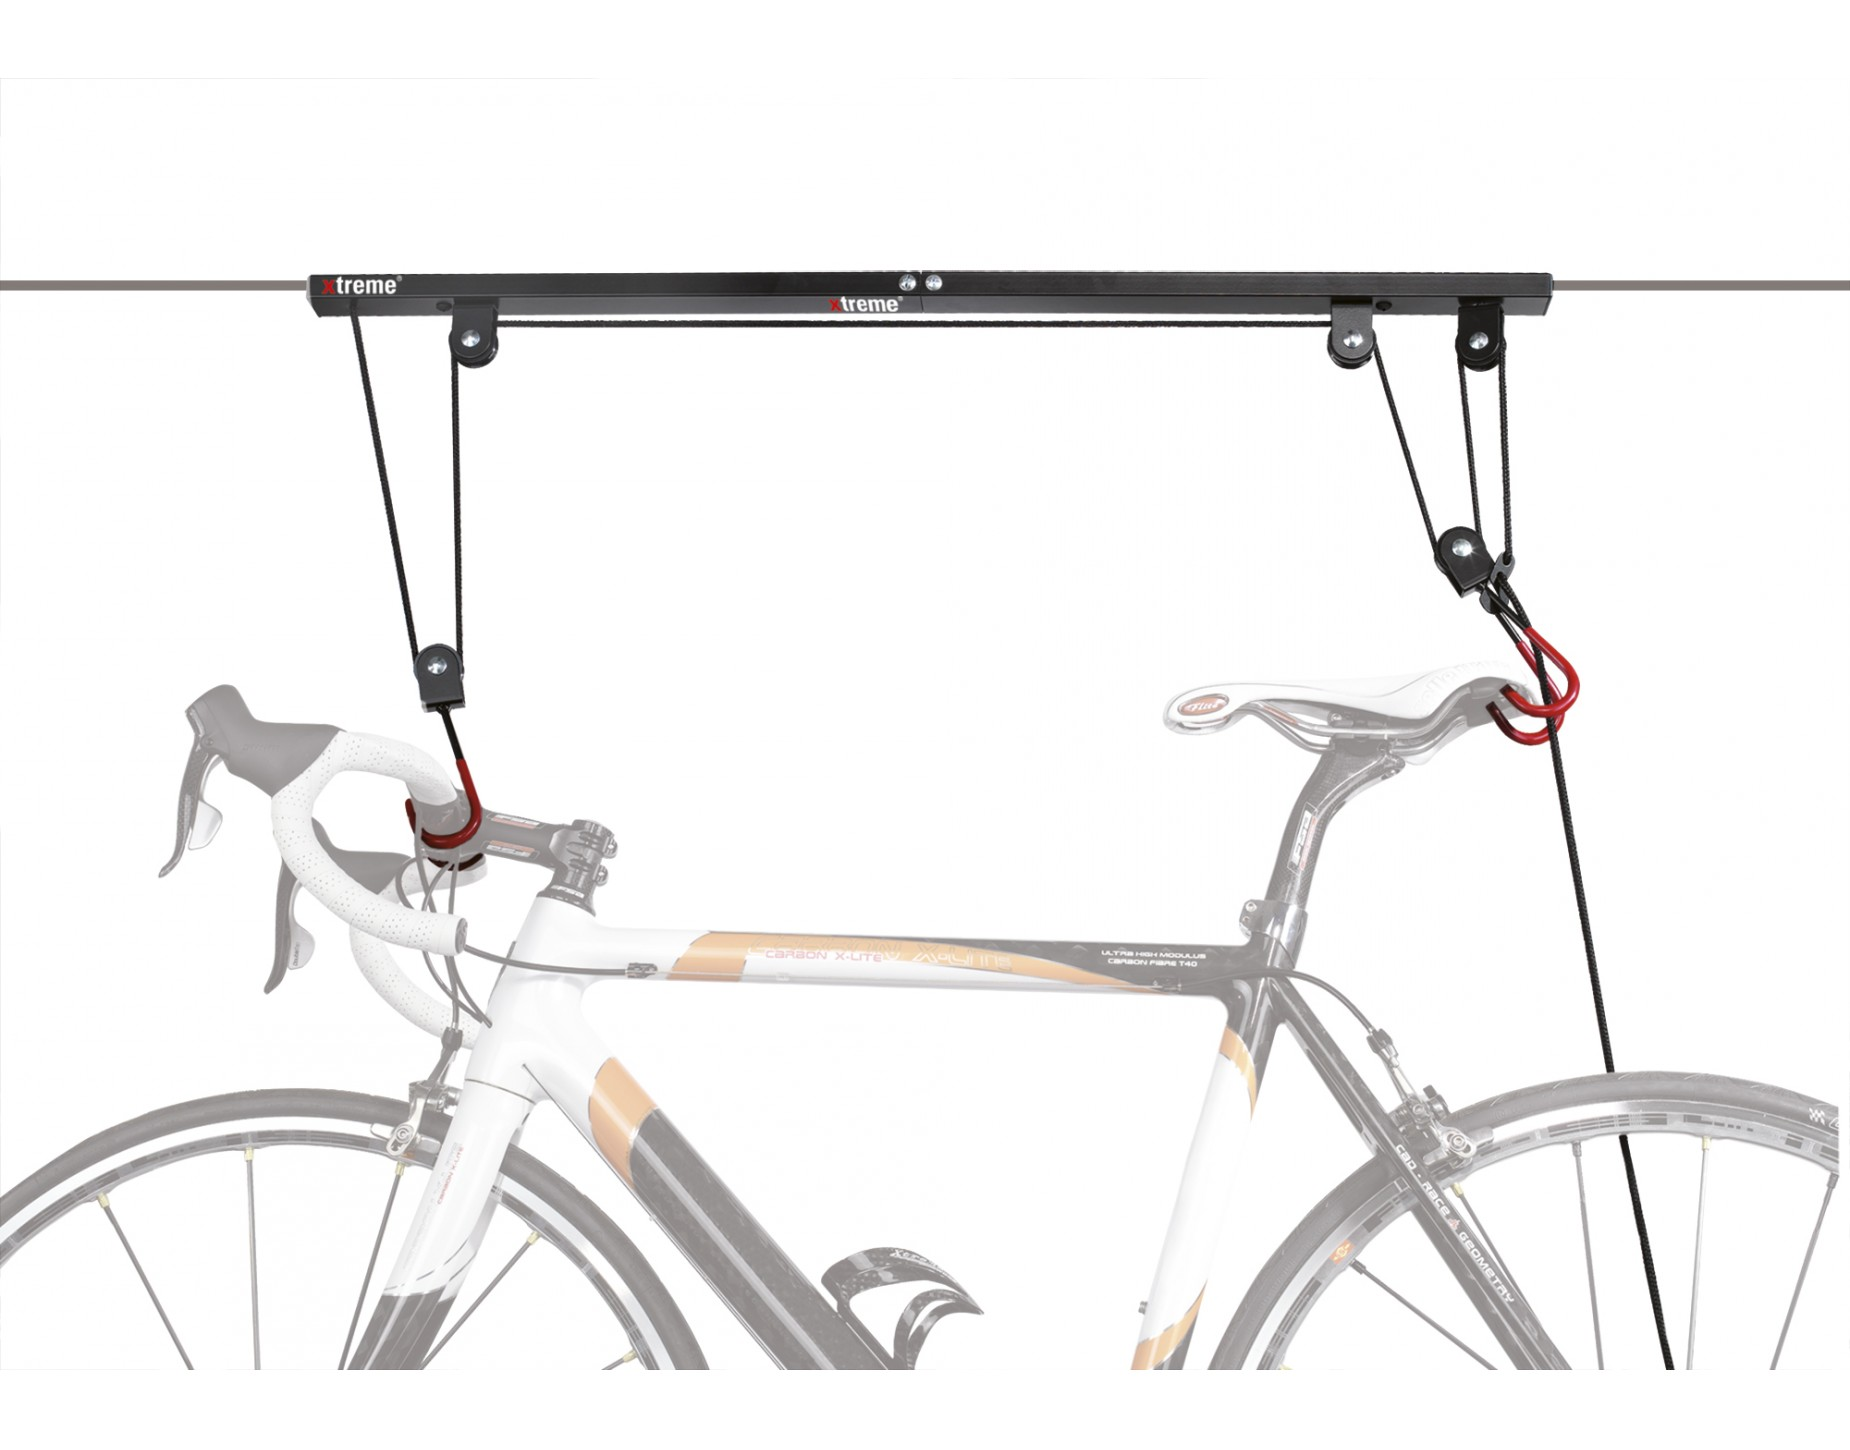 Xtreme Dl 1 Ceiling Bike Lift Everything You Need Rose Bikes